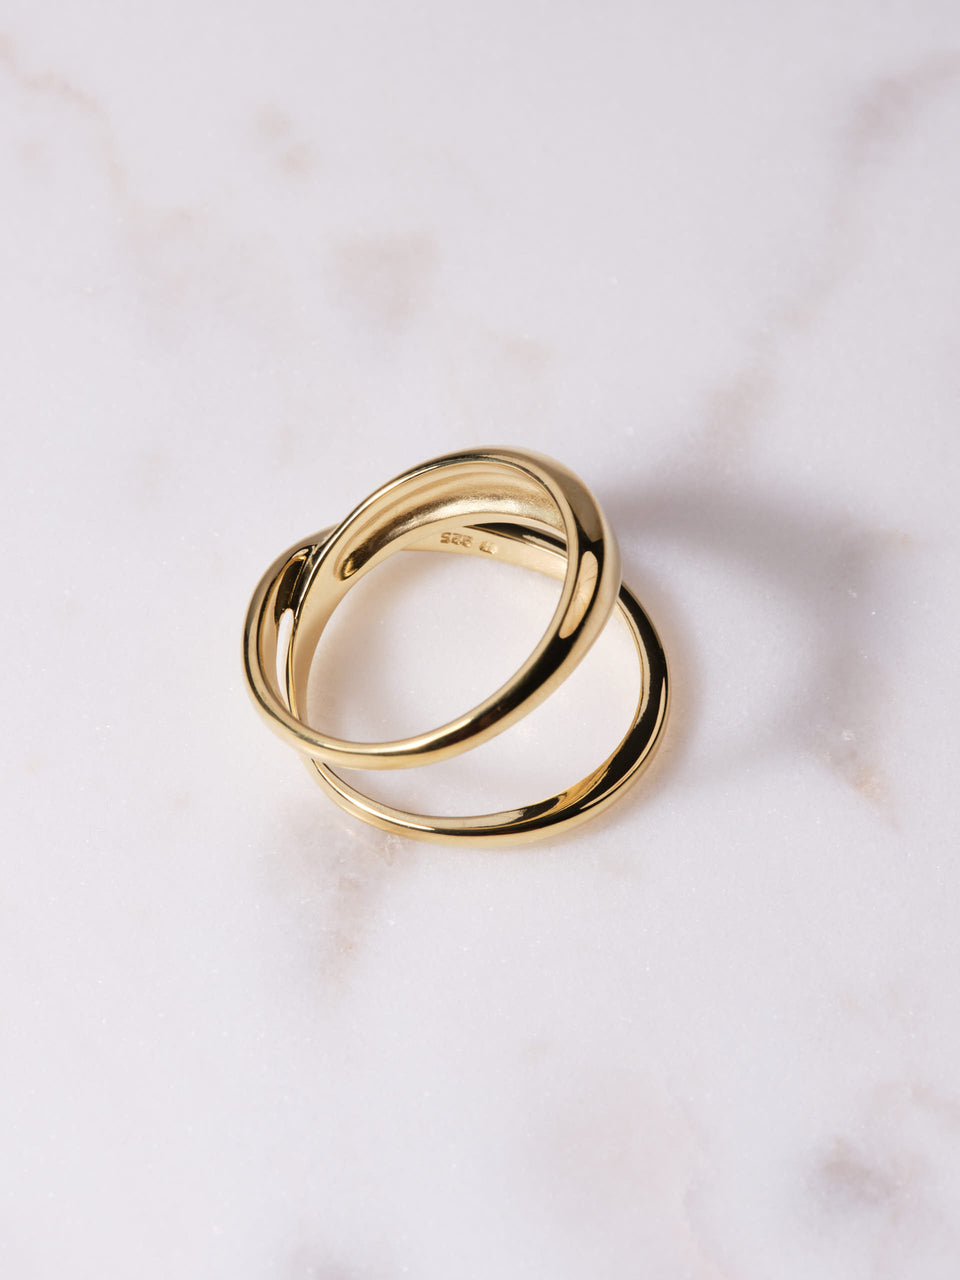 Trine Tuxen / Loop Ring / Ring i gull